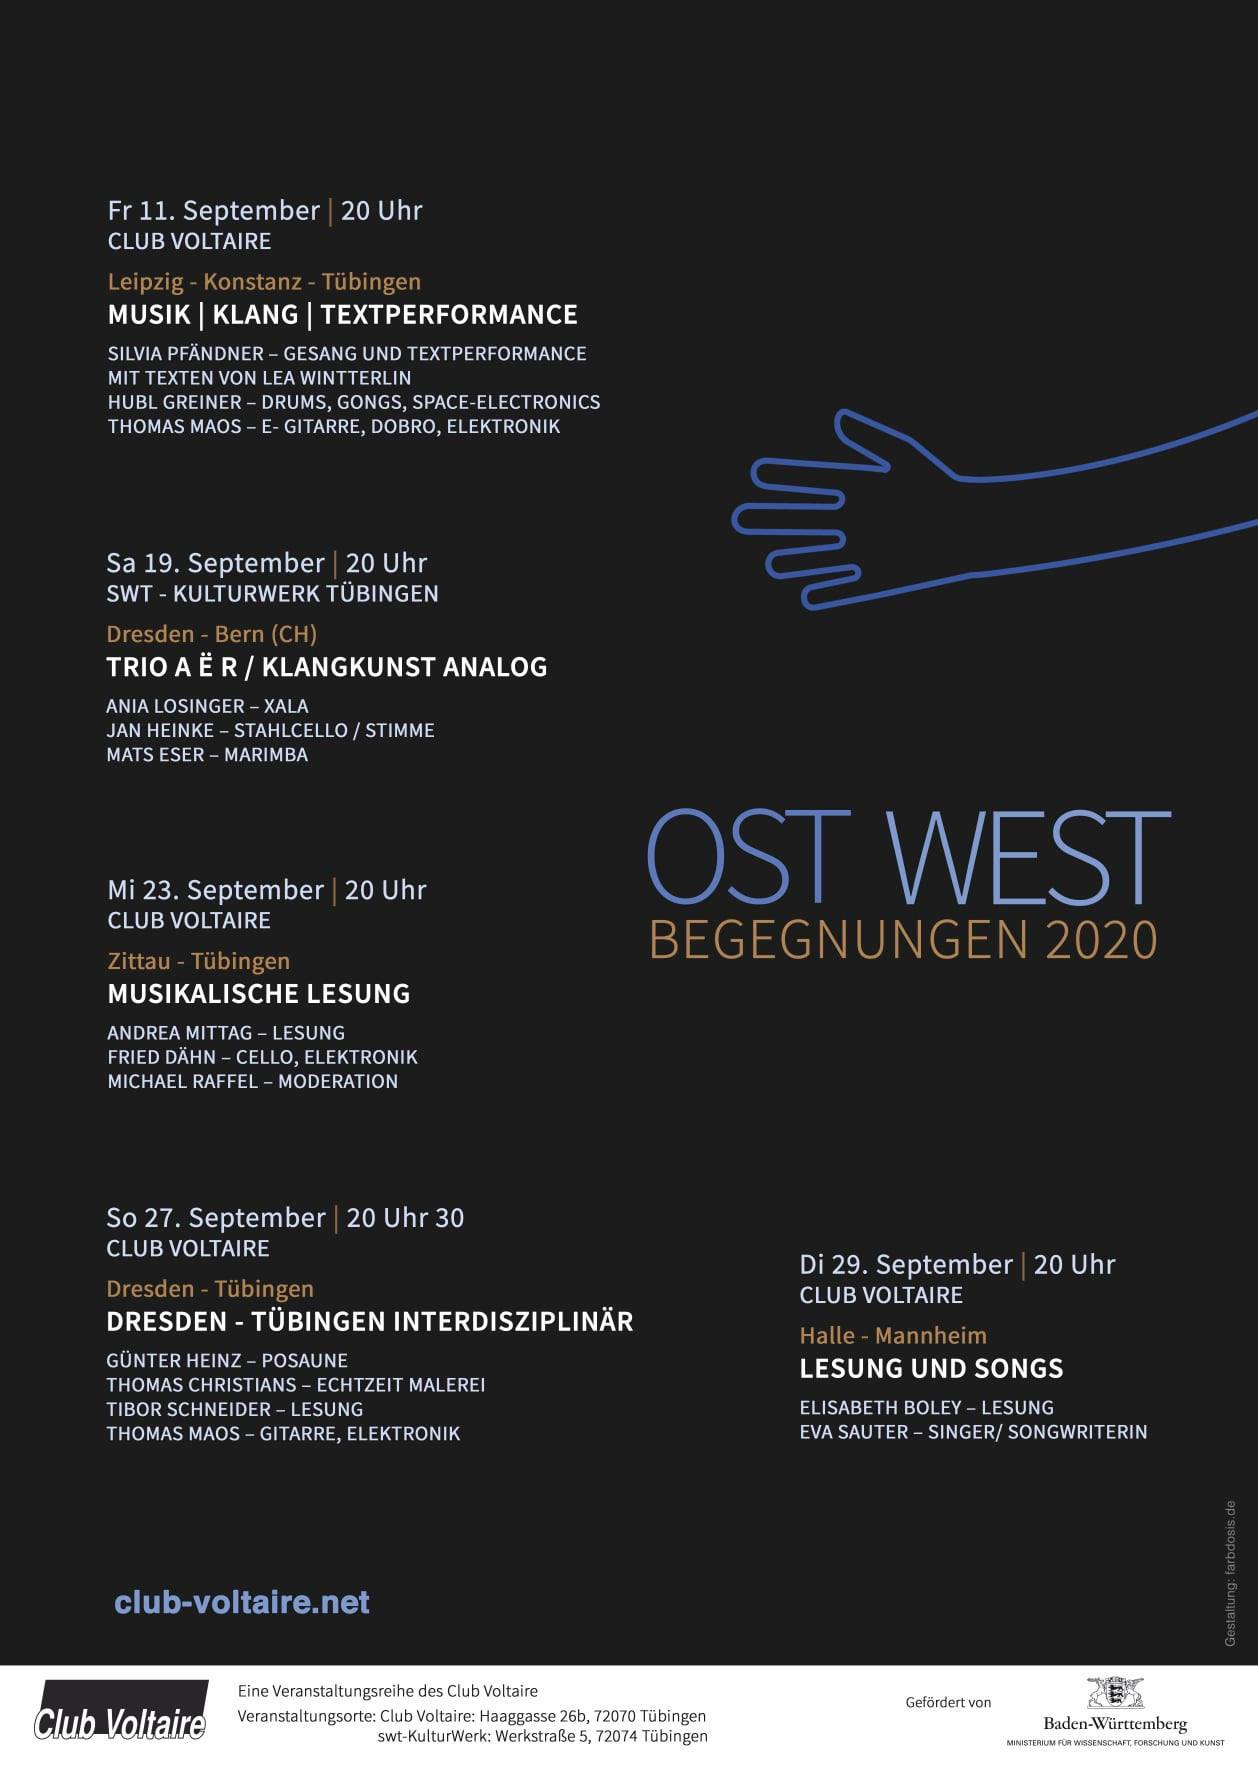 Ost West